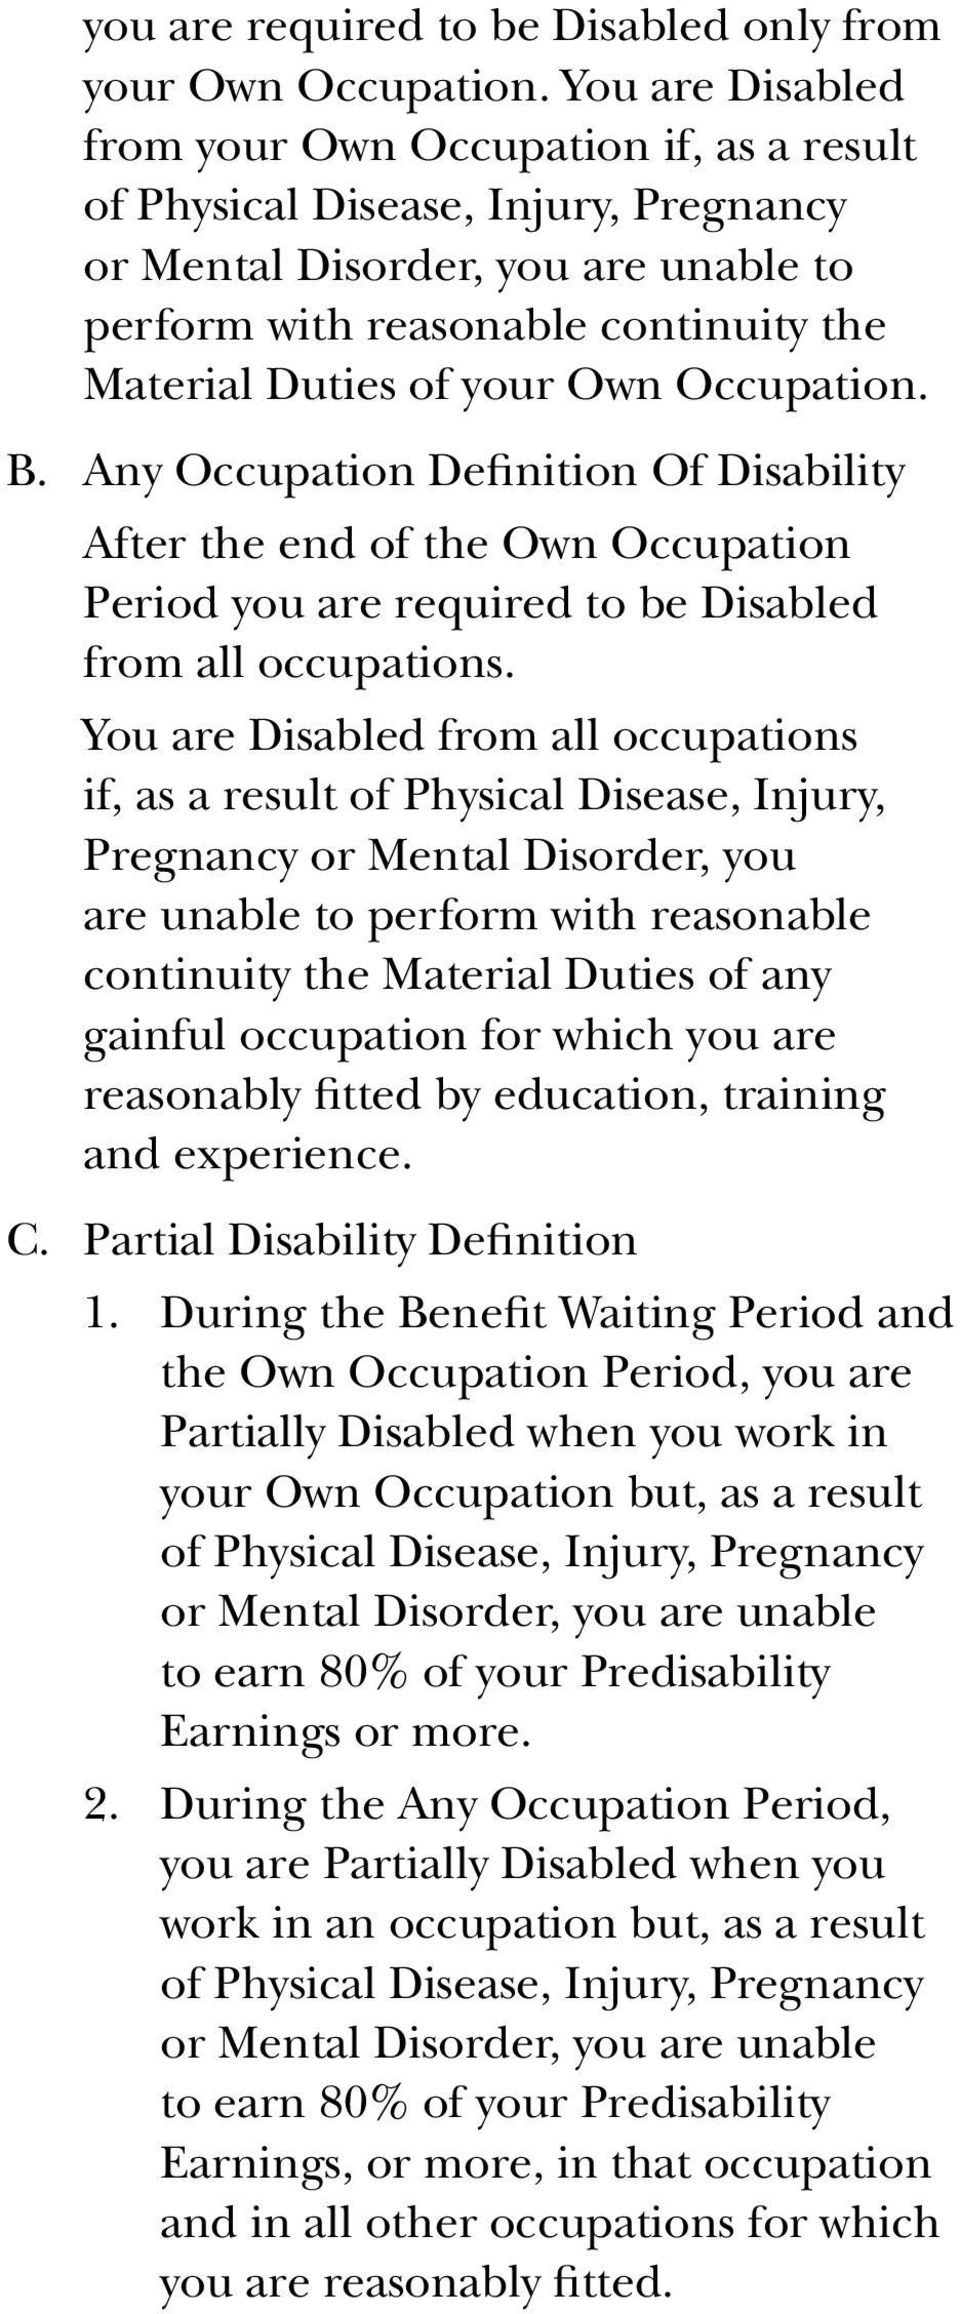 Own Occupation. B. Any Occupation Definition Of Disability After the end of the Own Occupation Period you are required to be Disabled from all occupations.